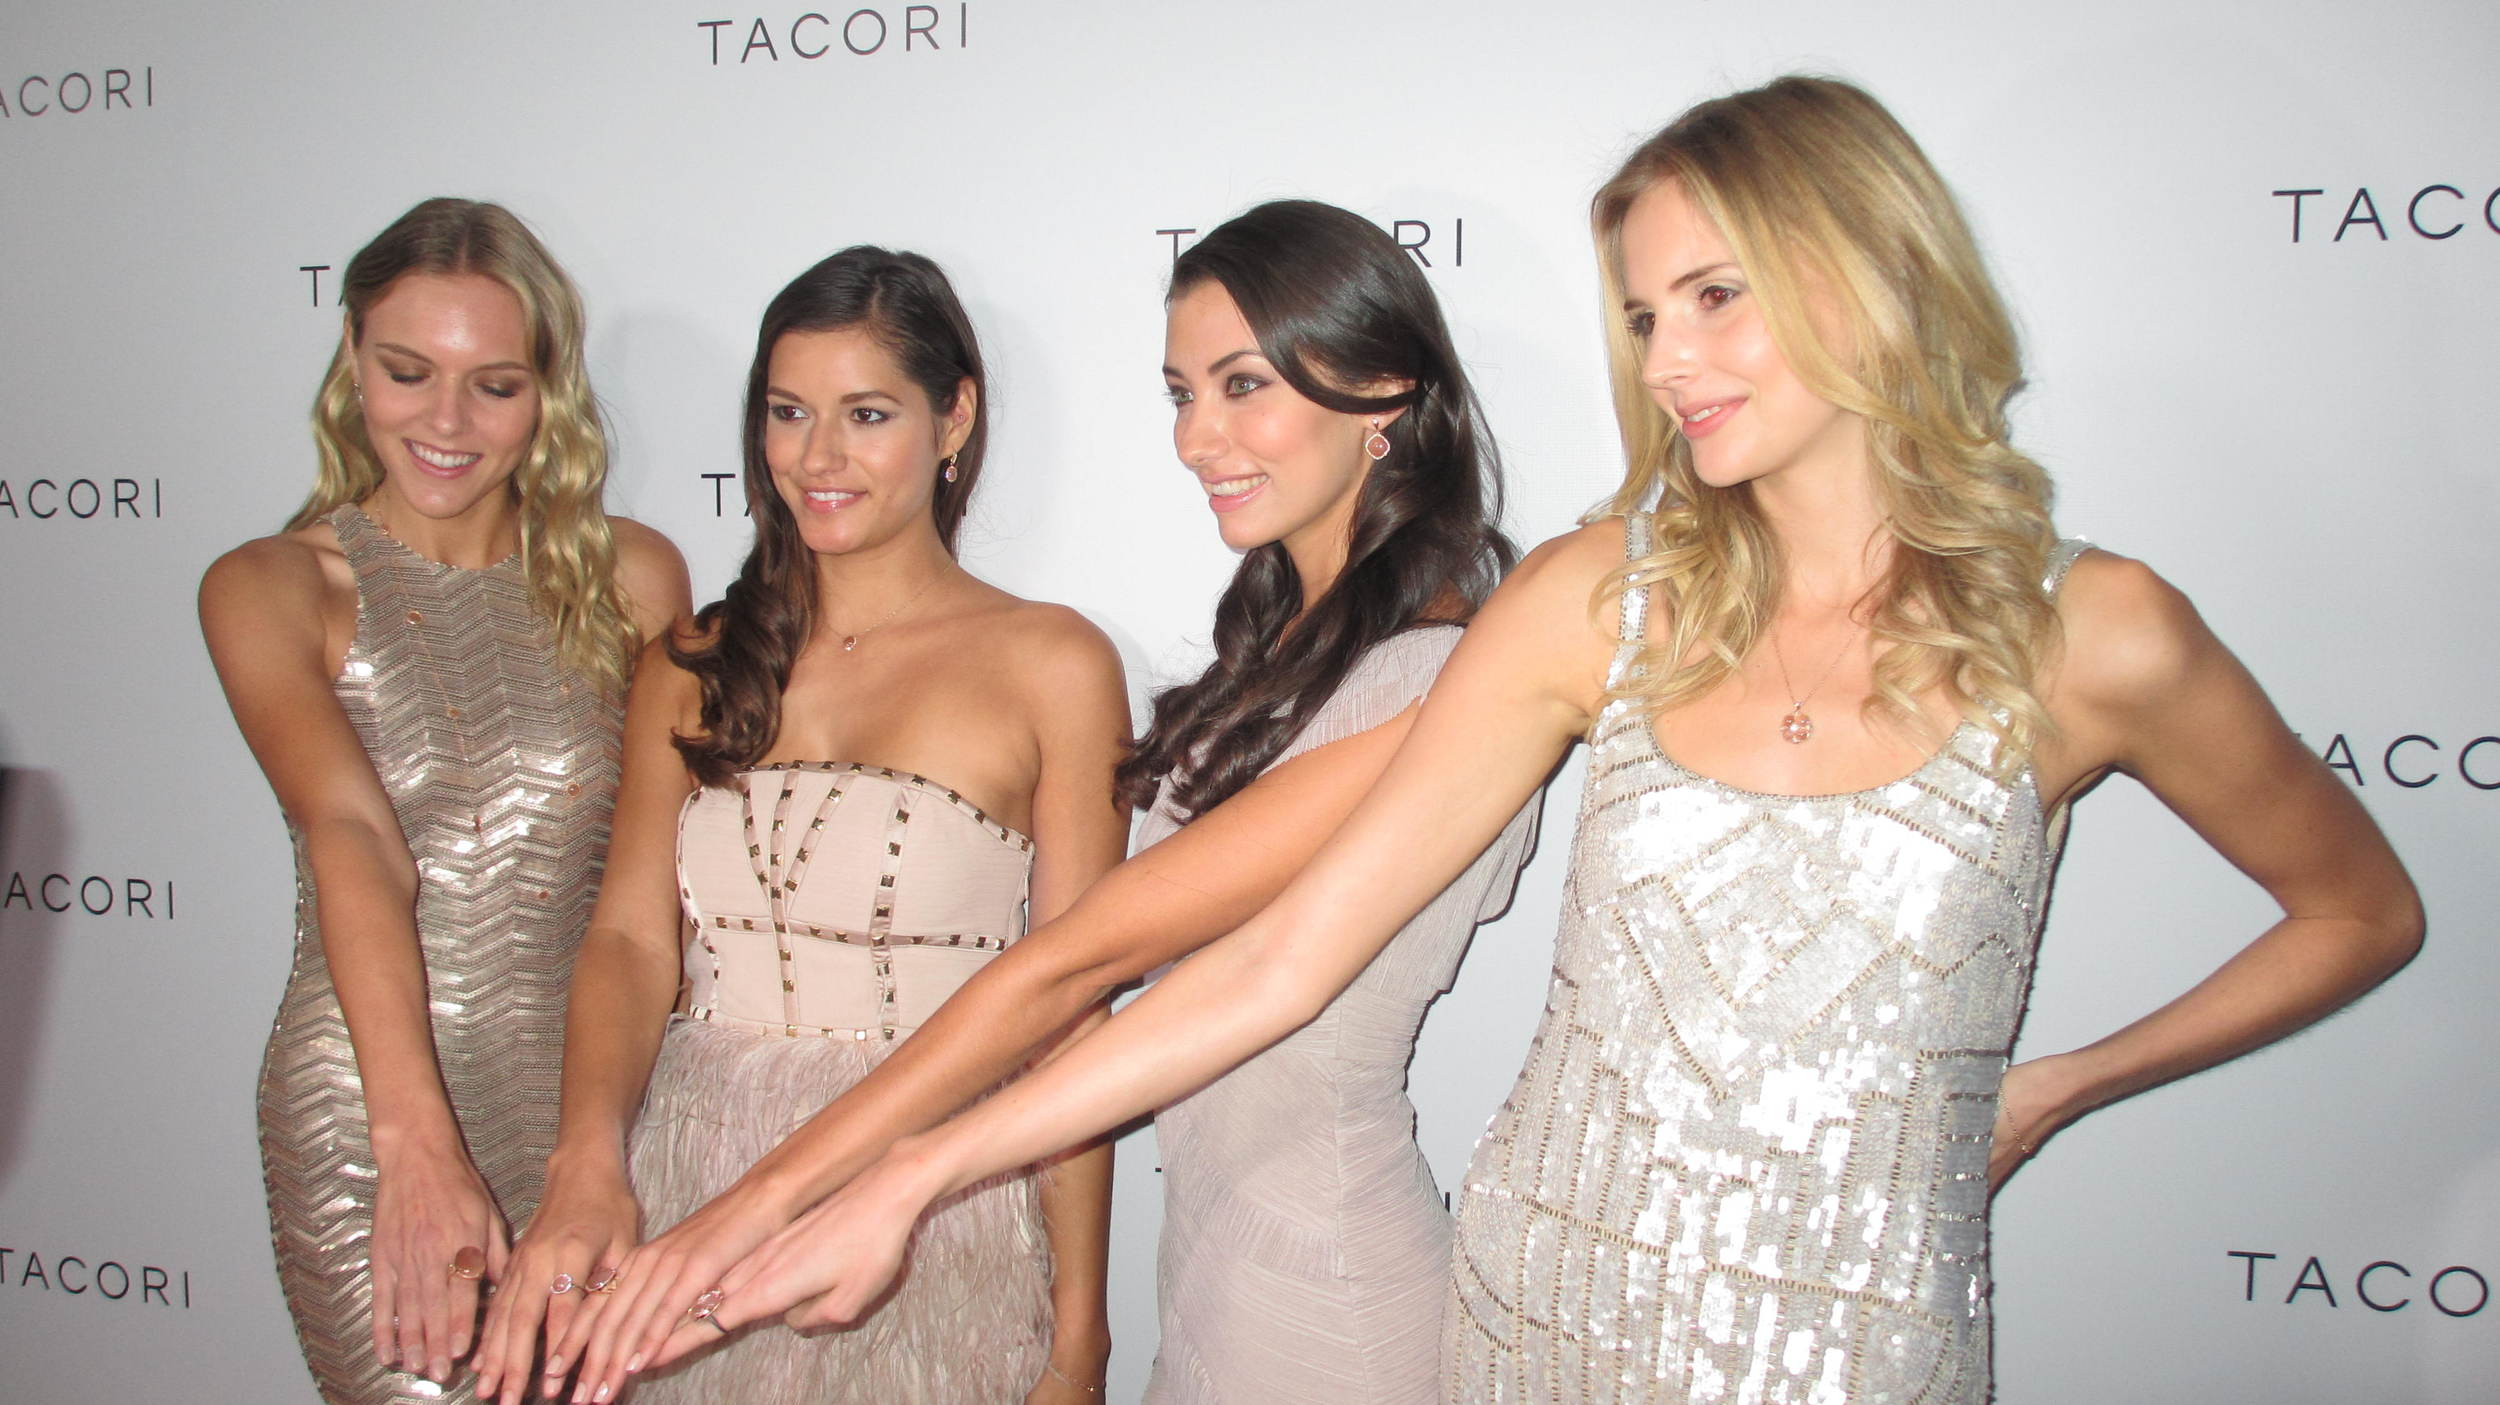 World premier of the TACORI Moon Rose Collection (Beverly Hills, California)